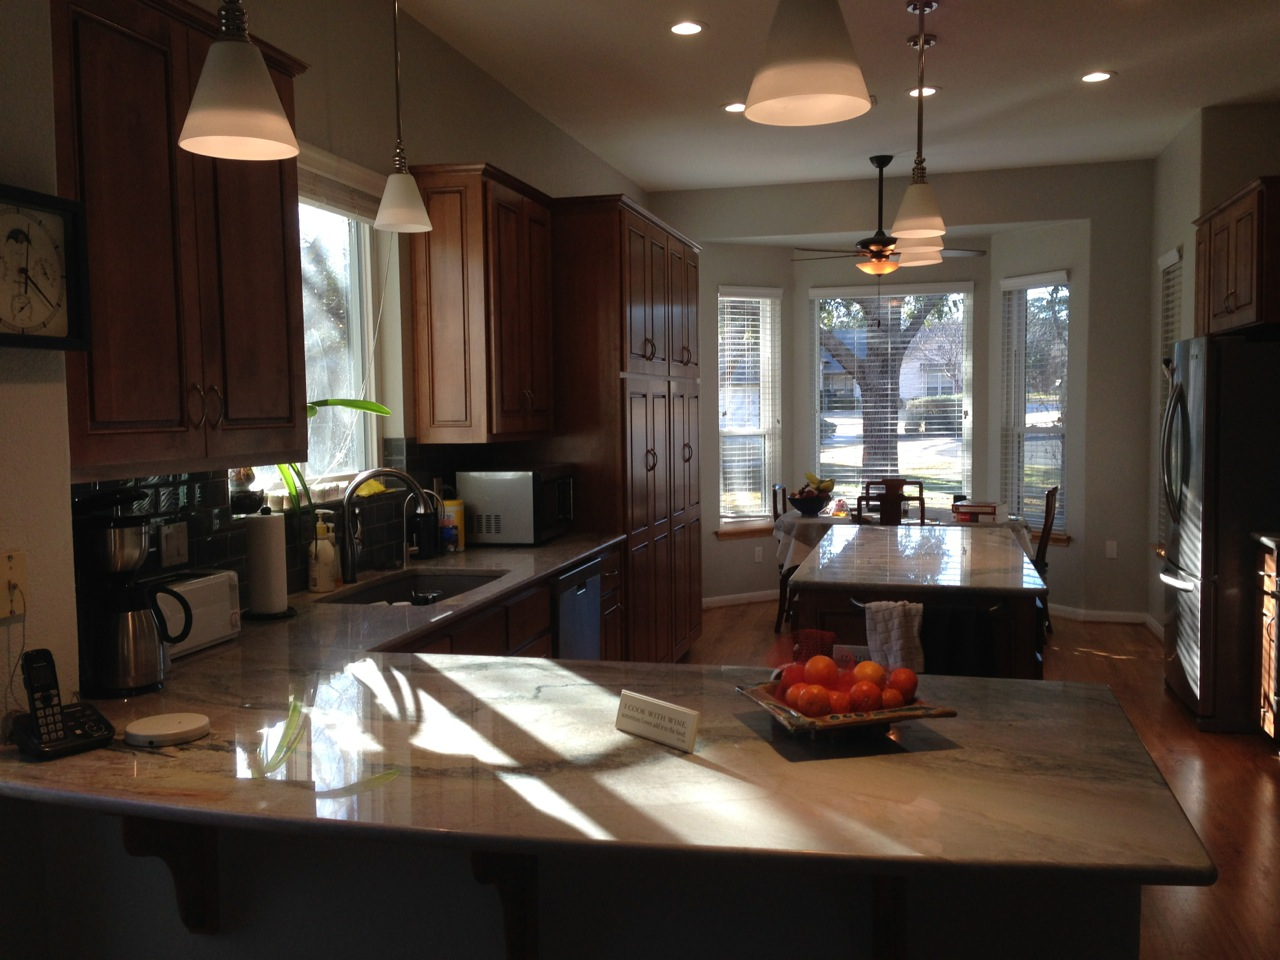 Derrer Job Overall Kitchen #2